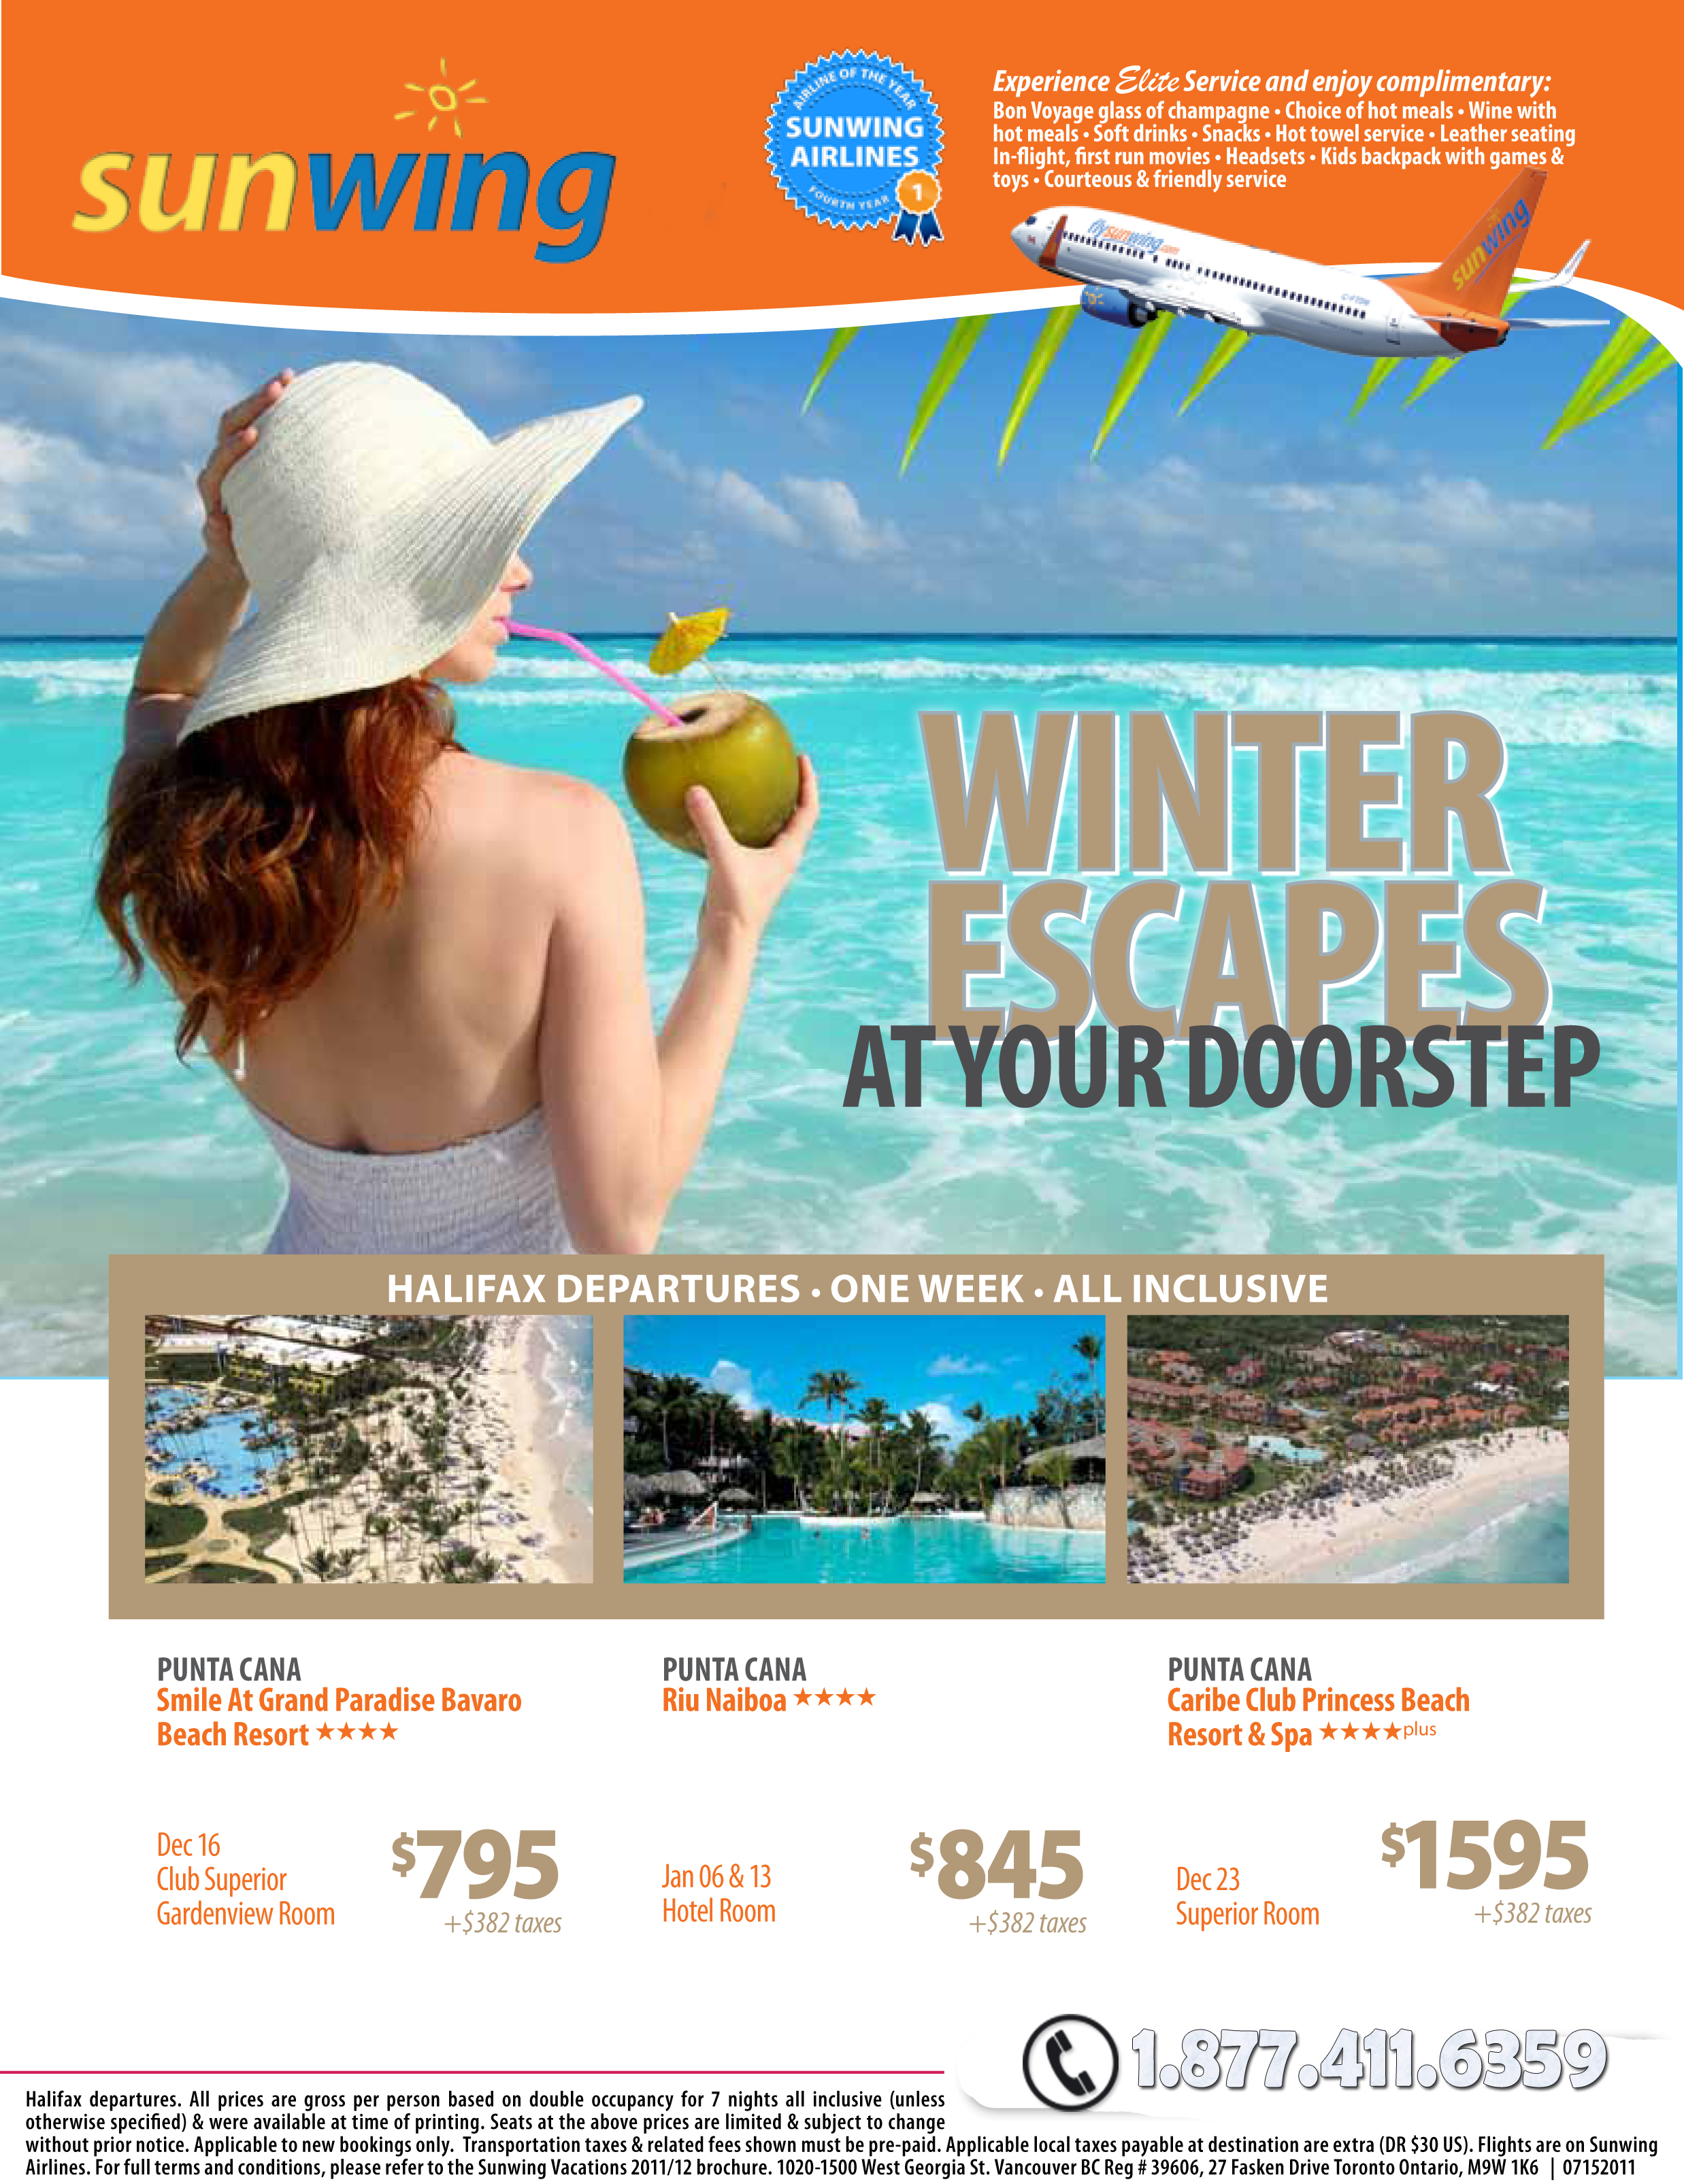 Sunwing Vacations Winter Escapes With Sunwing Vacations